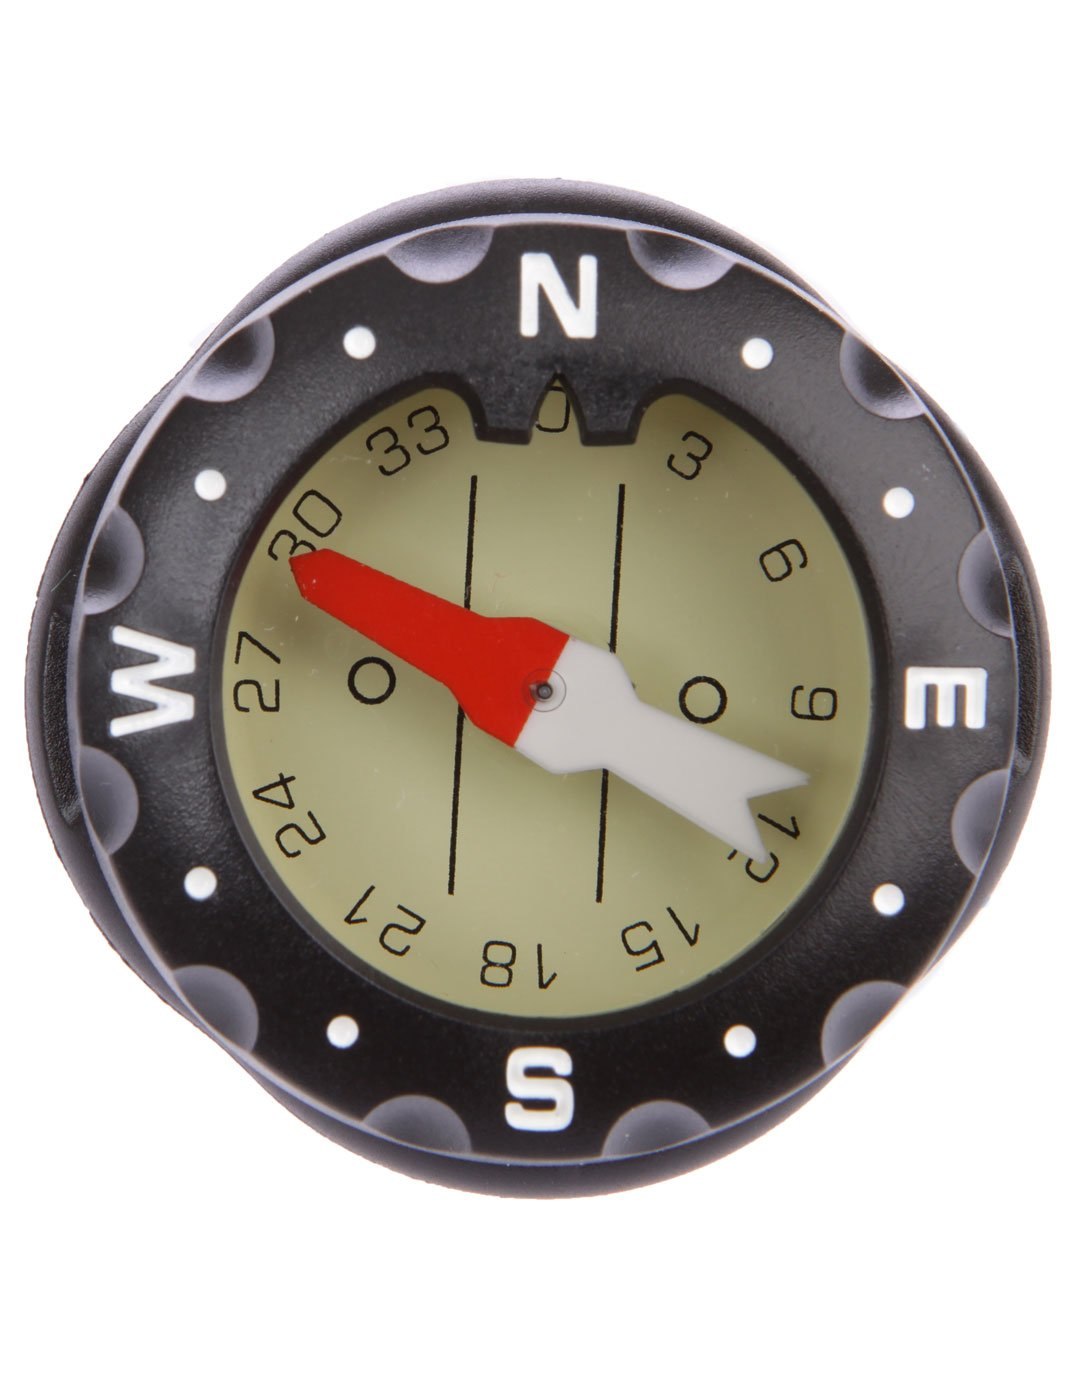 Image of Scubapro C1 Compass for Strap Mounting